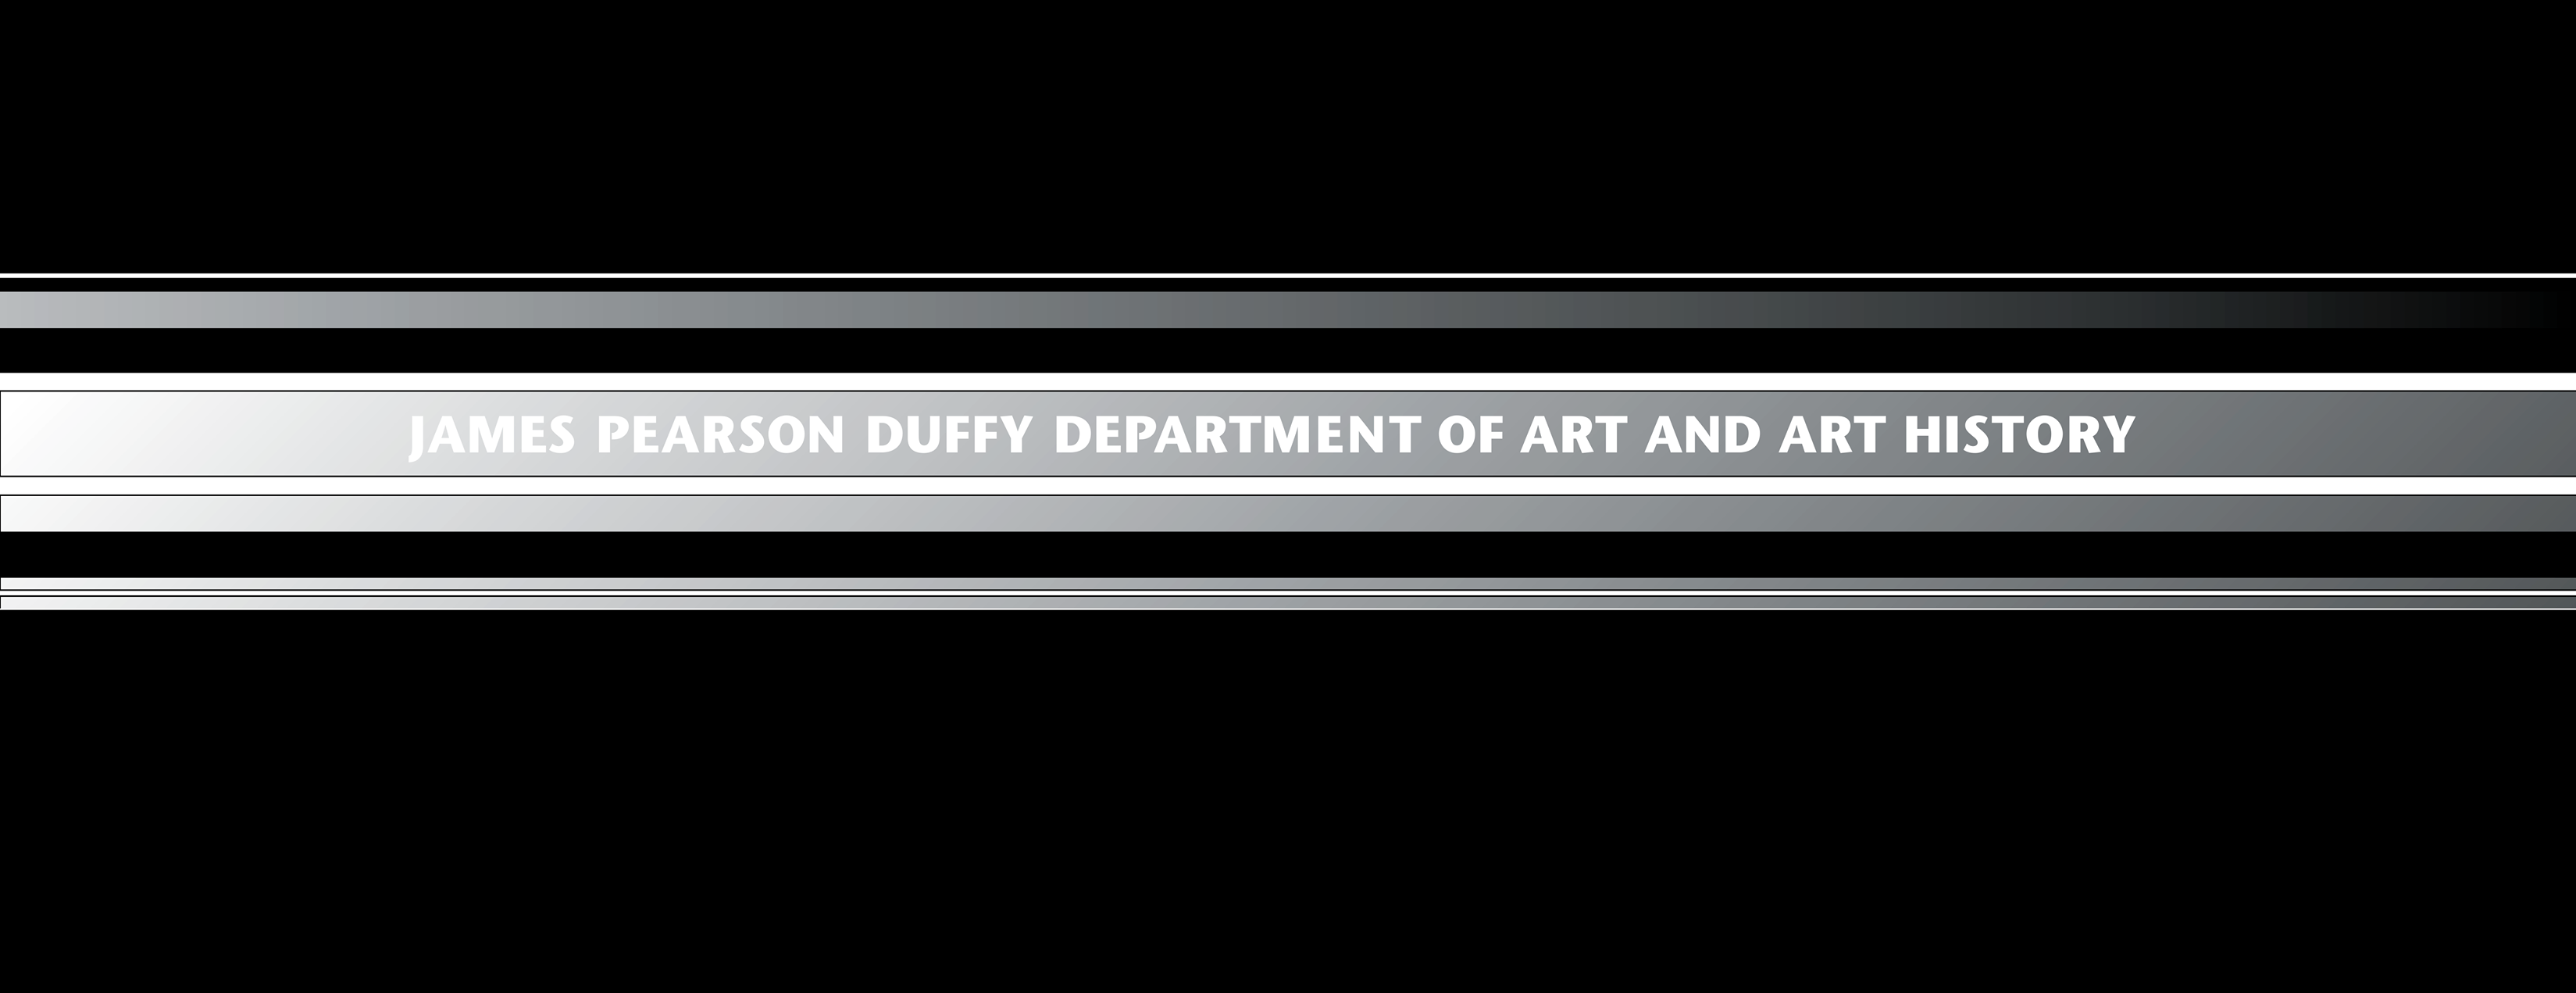 College Wayne State University James Pearson Duffy Department of Art and Art History